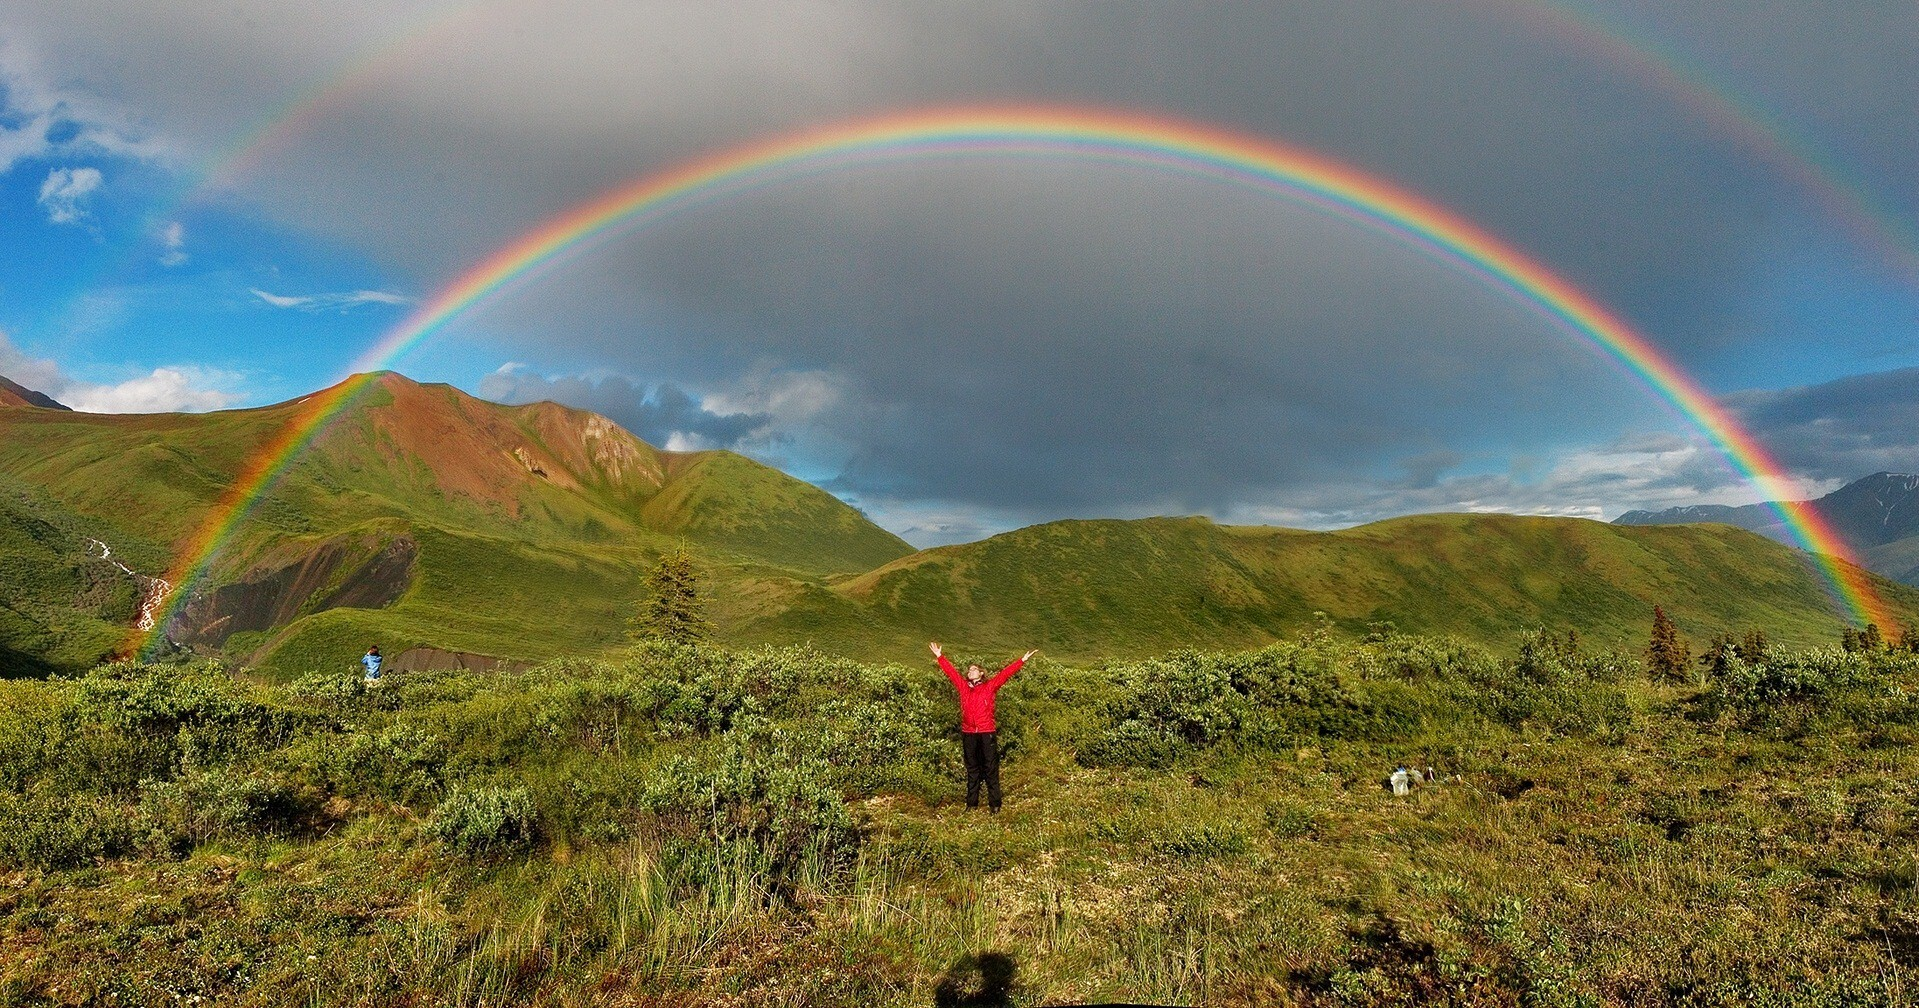 People enjoy natural double rainbows hd wallpapers voltagebd Choice Image